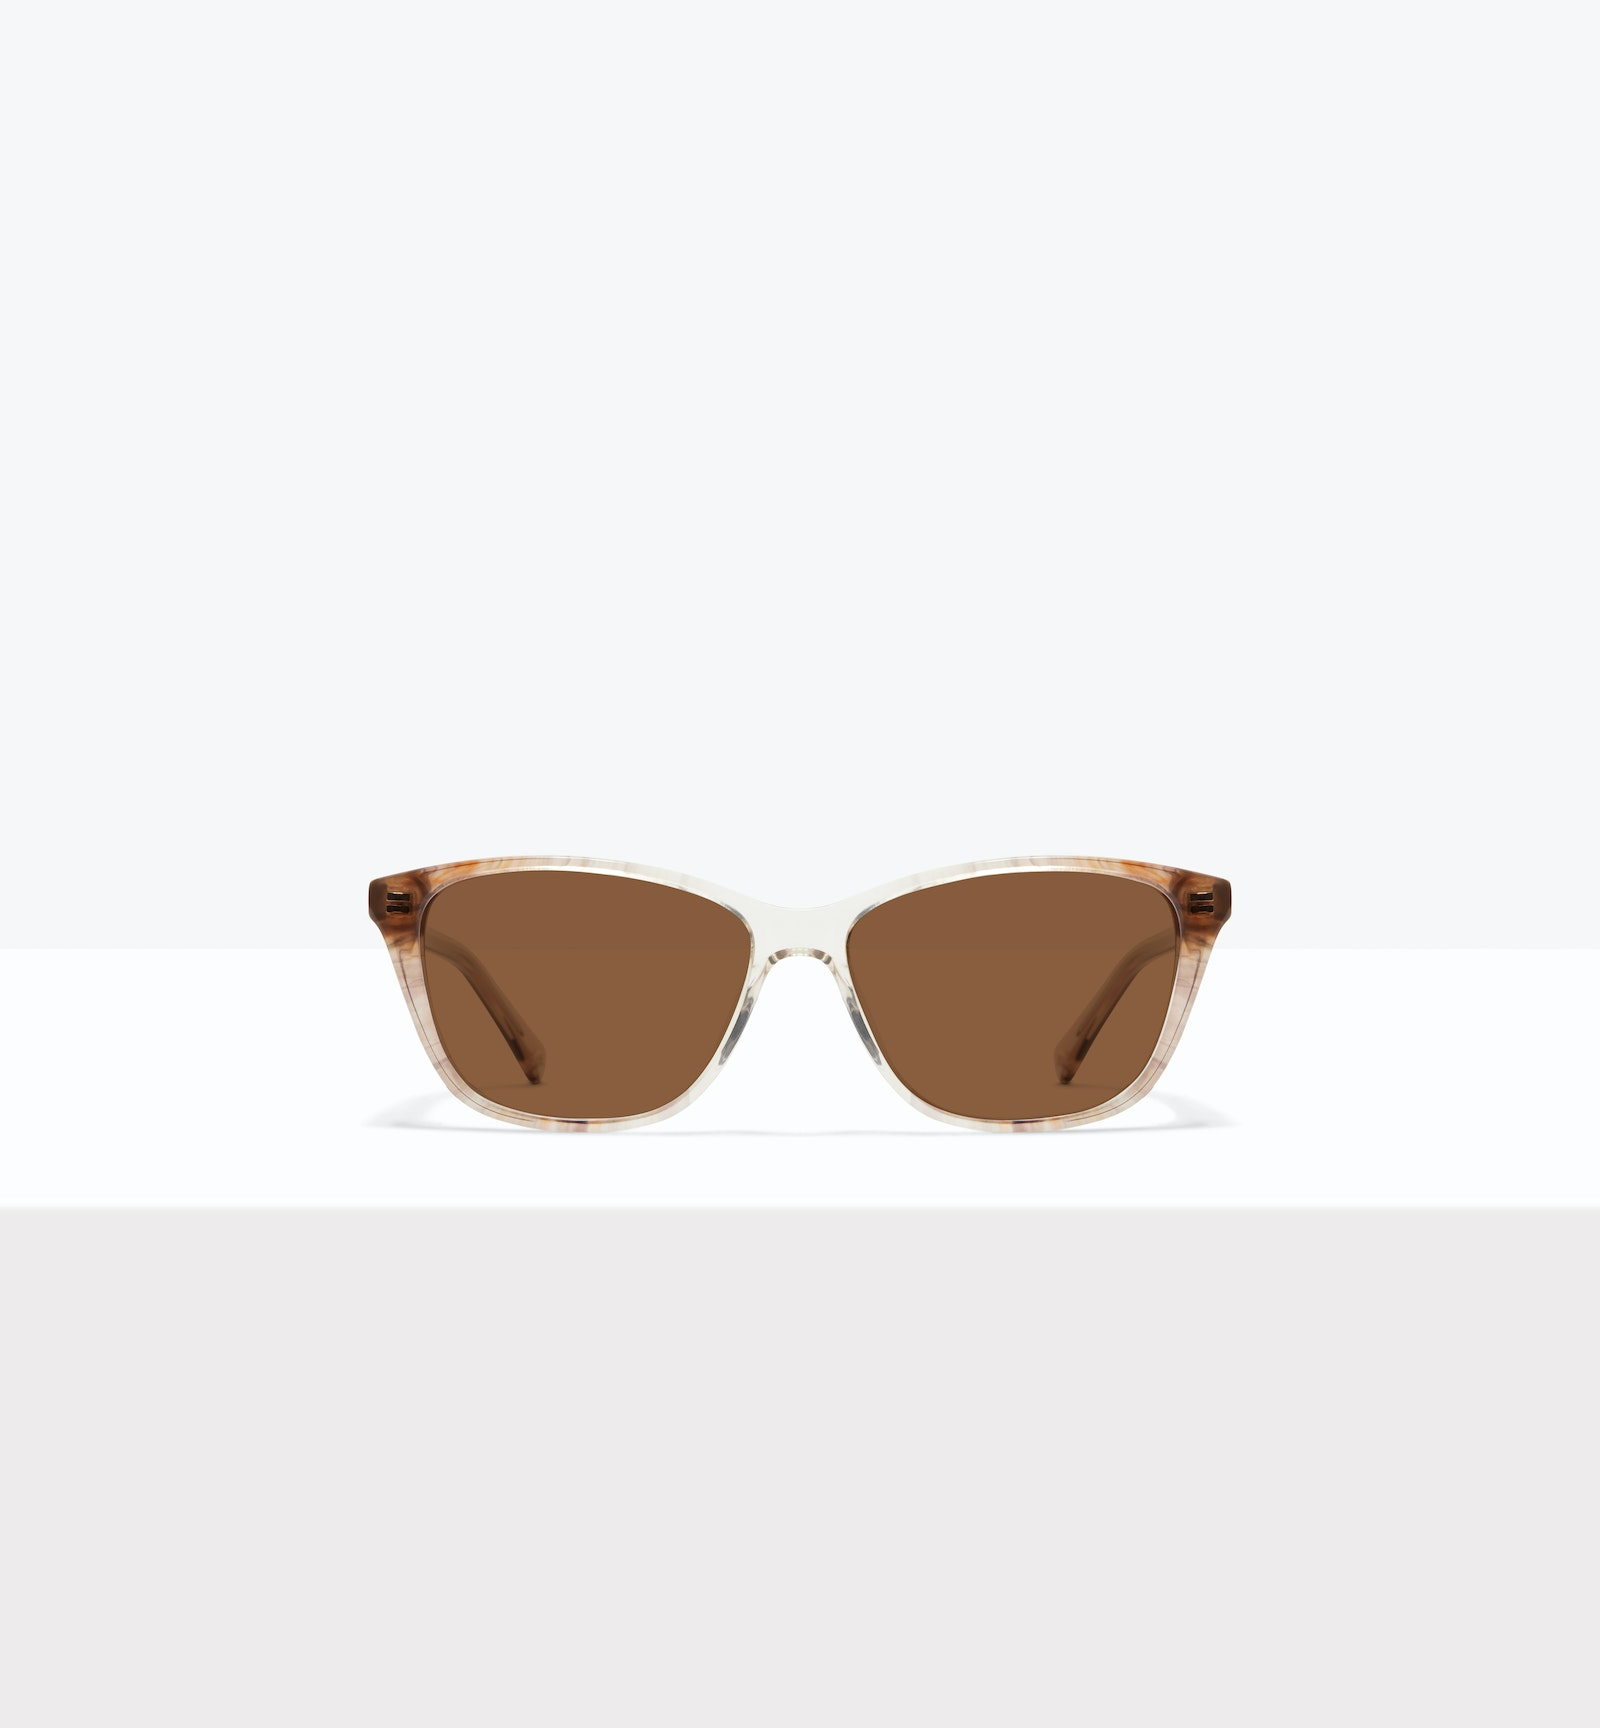 Affordable Fashion Glasses Cat Eye Rectangle Sunglasses Women Myrtle M Sandstone